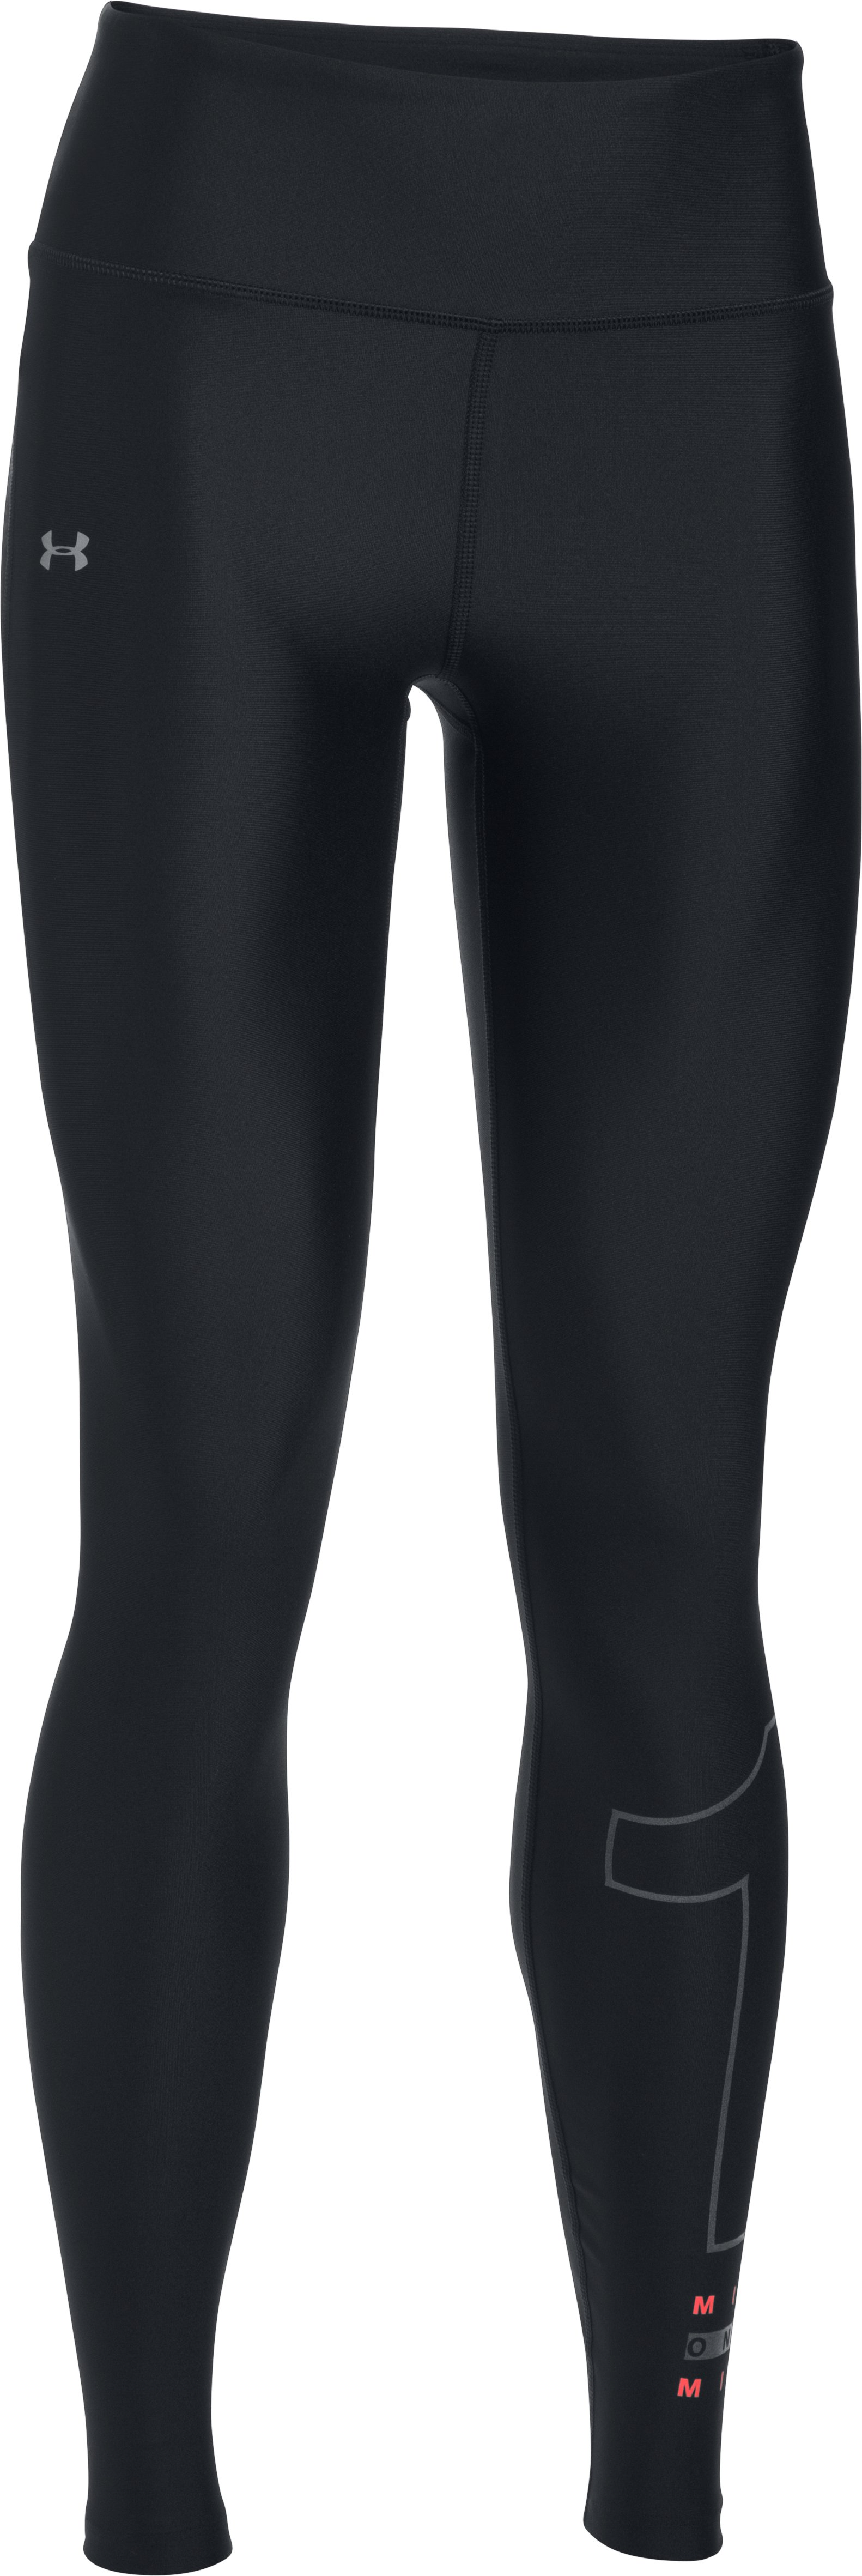 Women's UA 5280 Leggings, Black